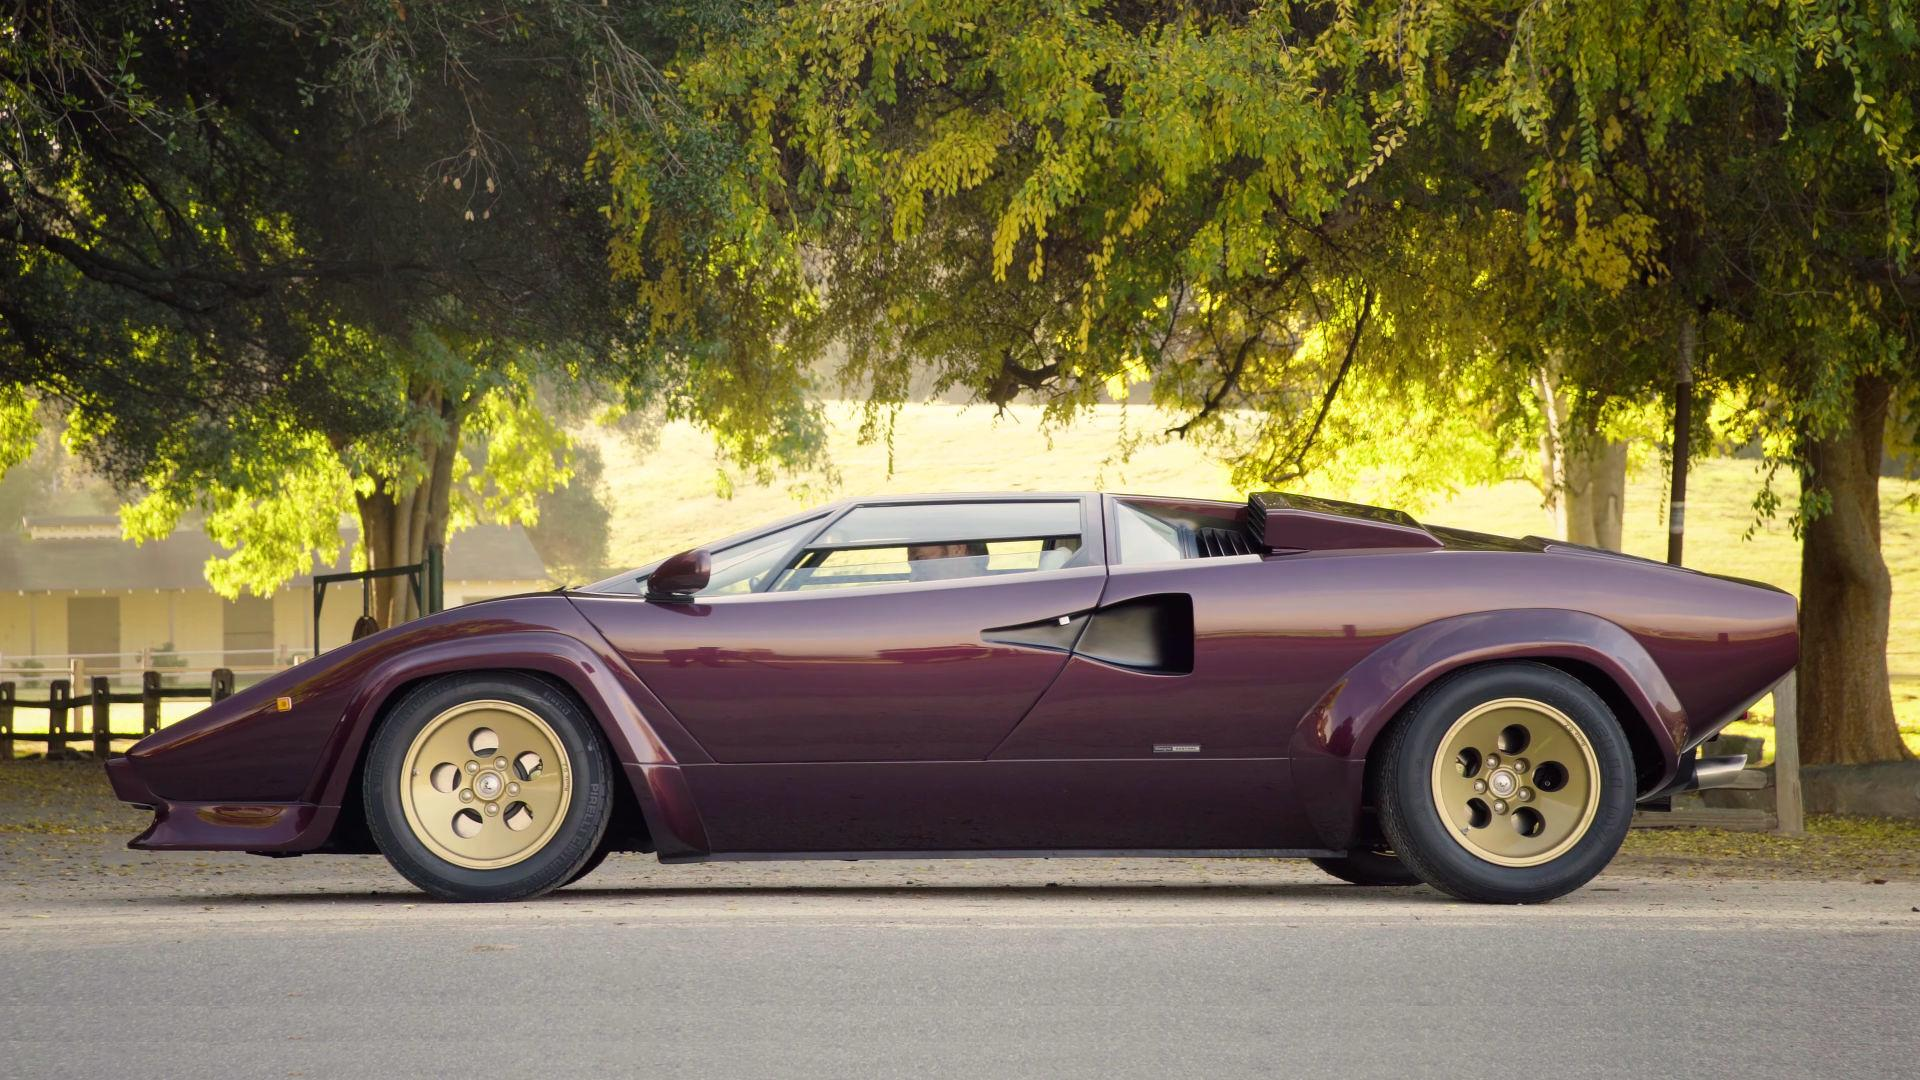 Countach Inspired Wheels Give Lamborghini Hurac 225 N Retro